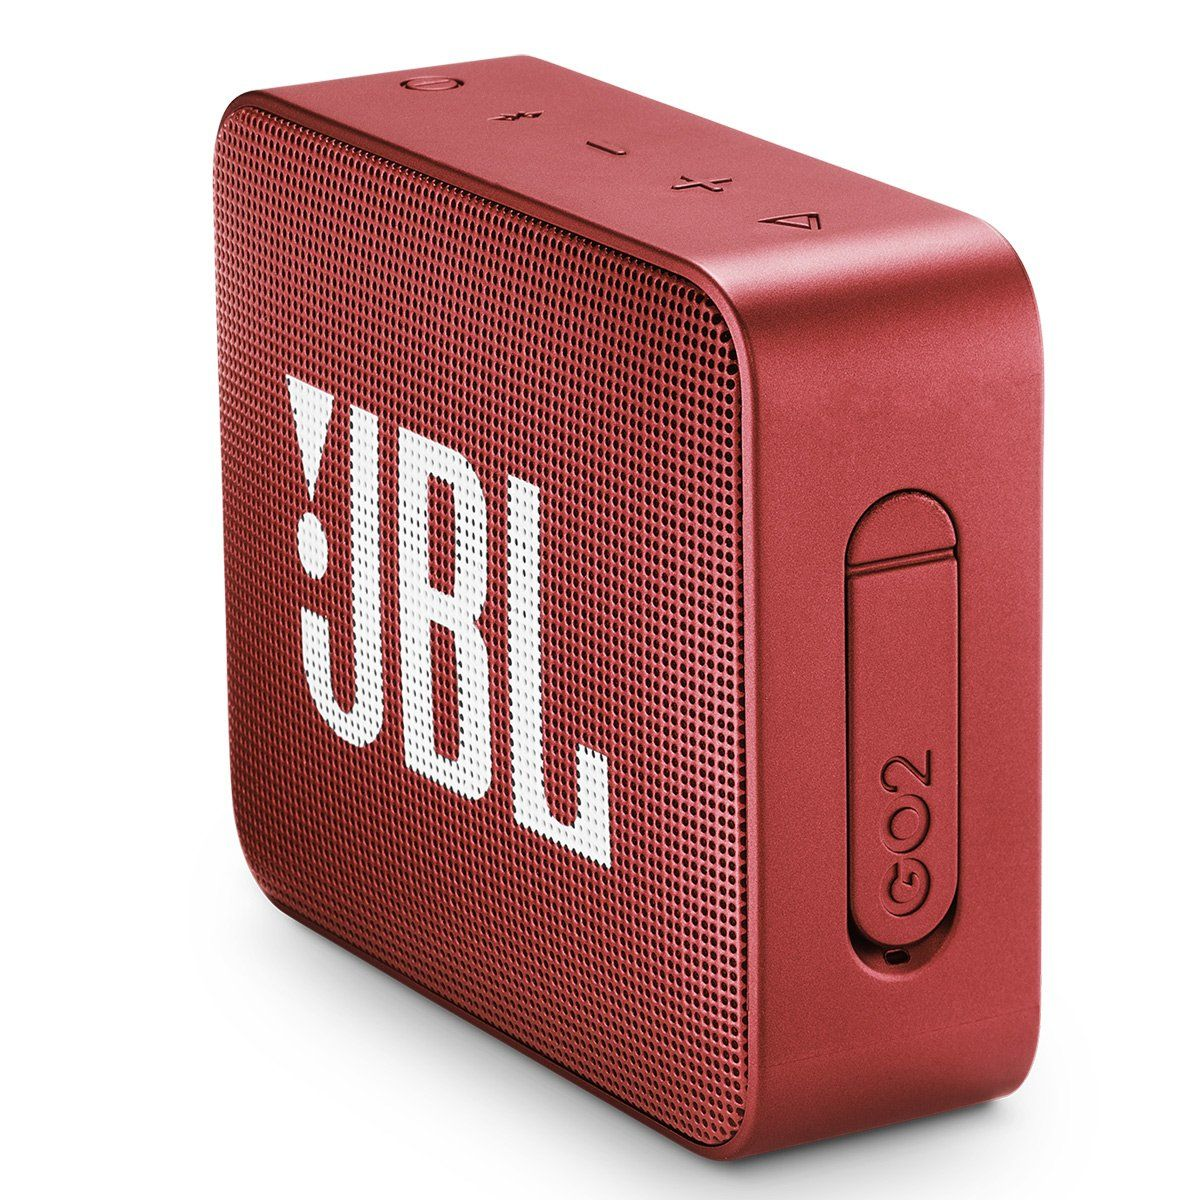 Jbl Go 2 Portable Bluetooth Waterproof Speaker Red Check Out This Great Product This Is An Affiliate Link Cellp With Images Waterproof Speaker Bluetooth Speaker Jbl